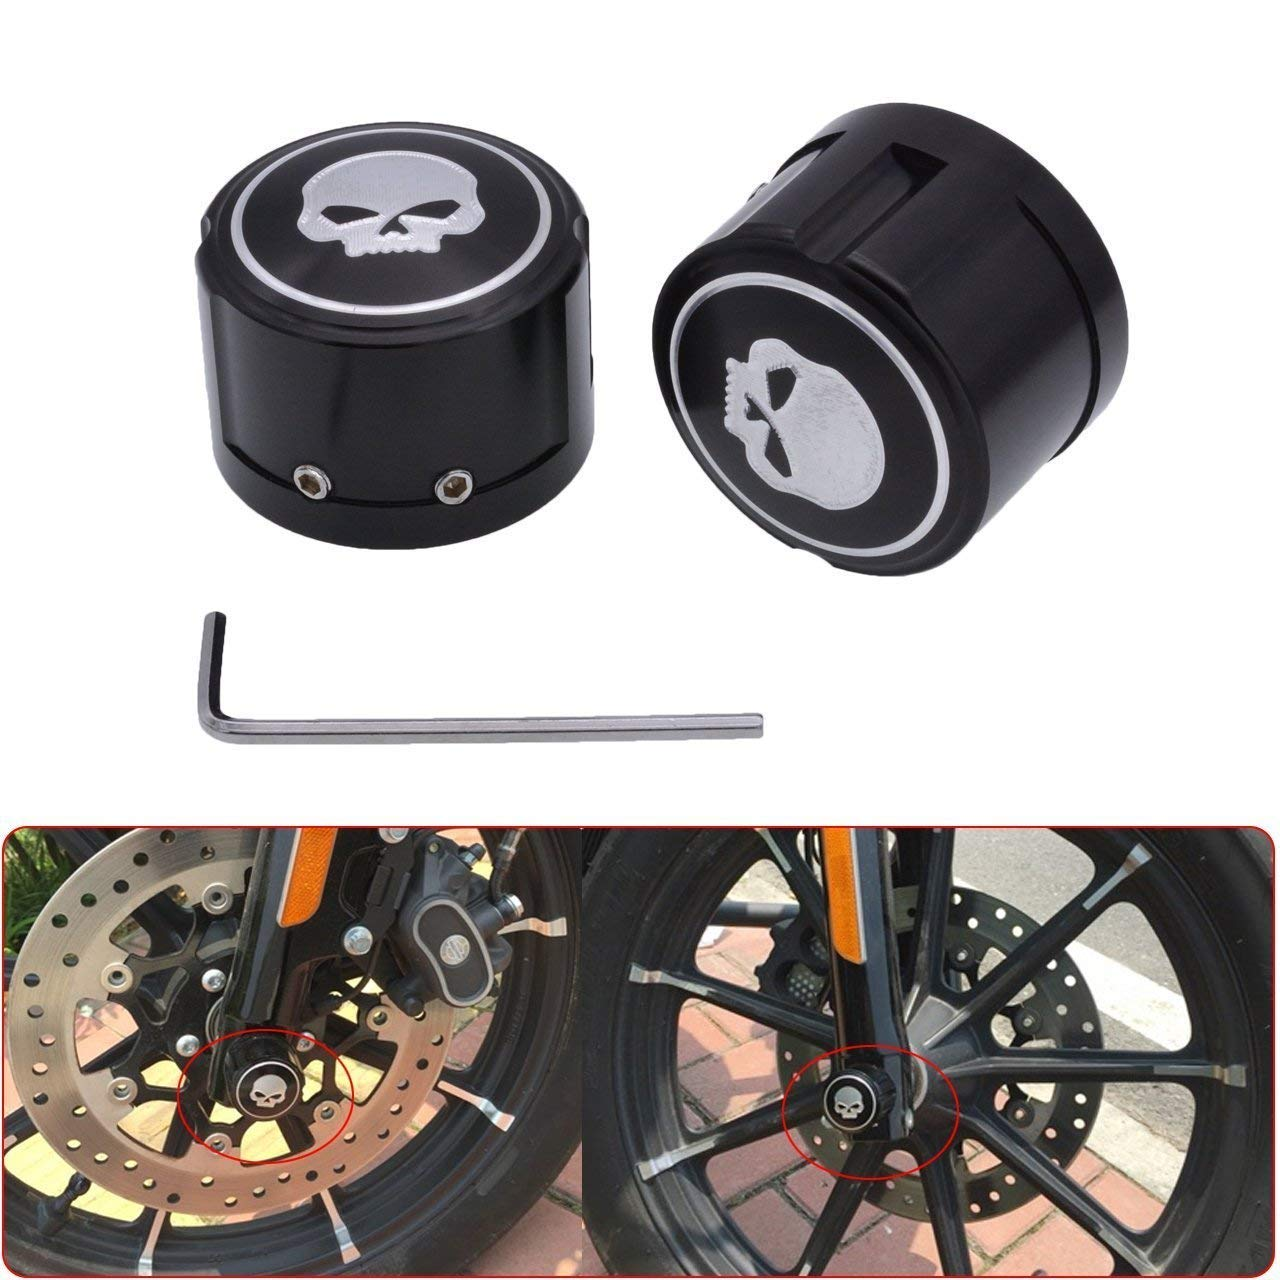 Lisyline Black Skull Front Axle Nut Cover Cap for Harley Softail Dyna V-Rod Sportster 883 XL1200 X48 Electra Street Glide